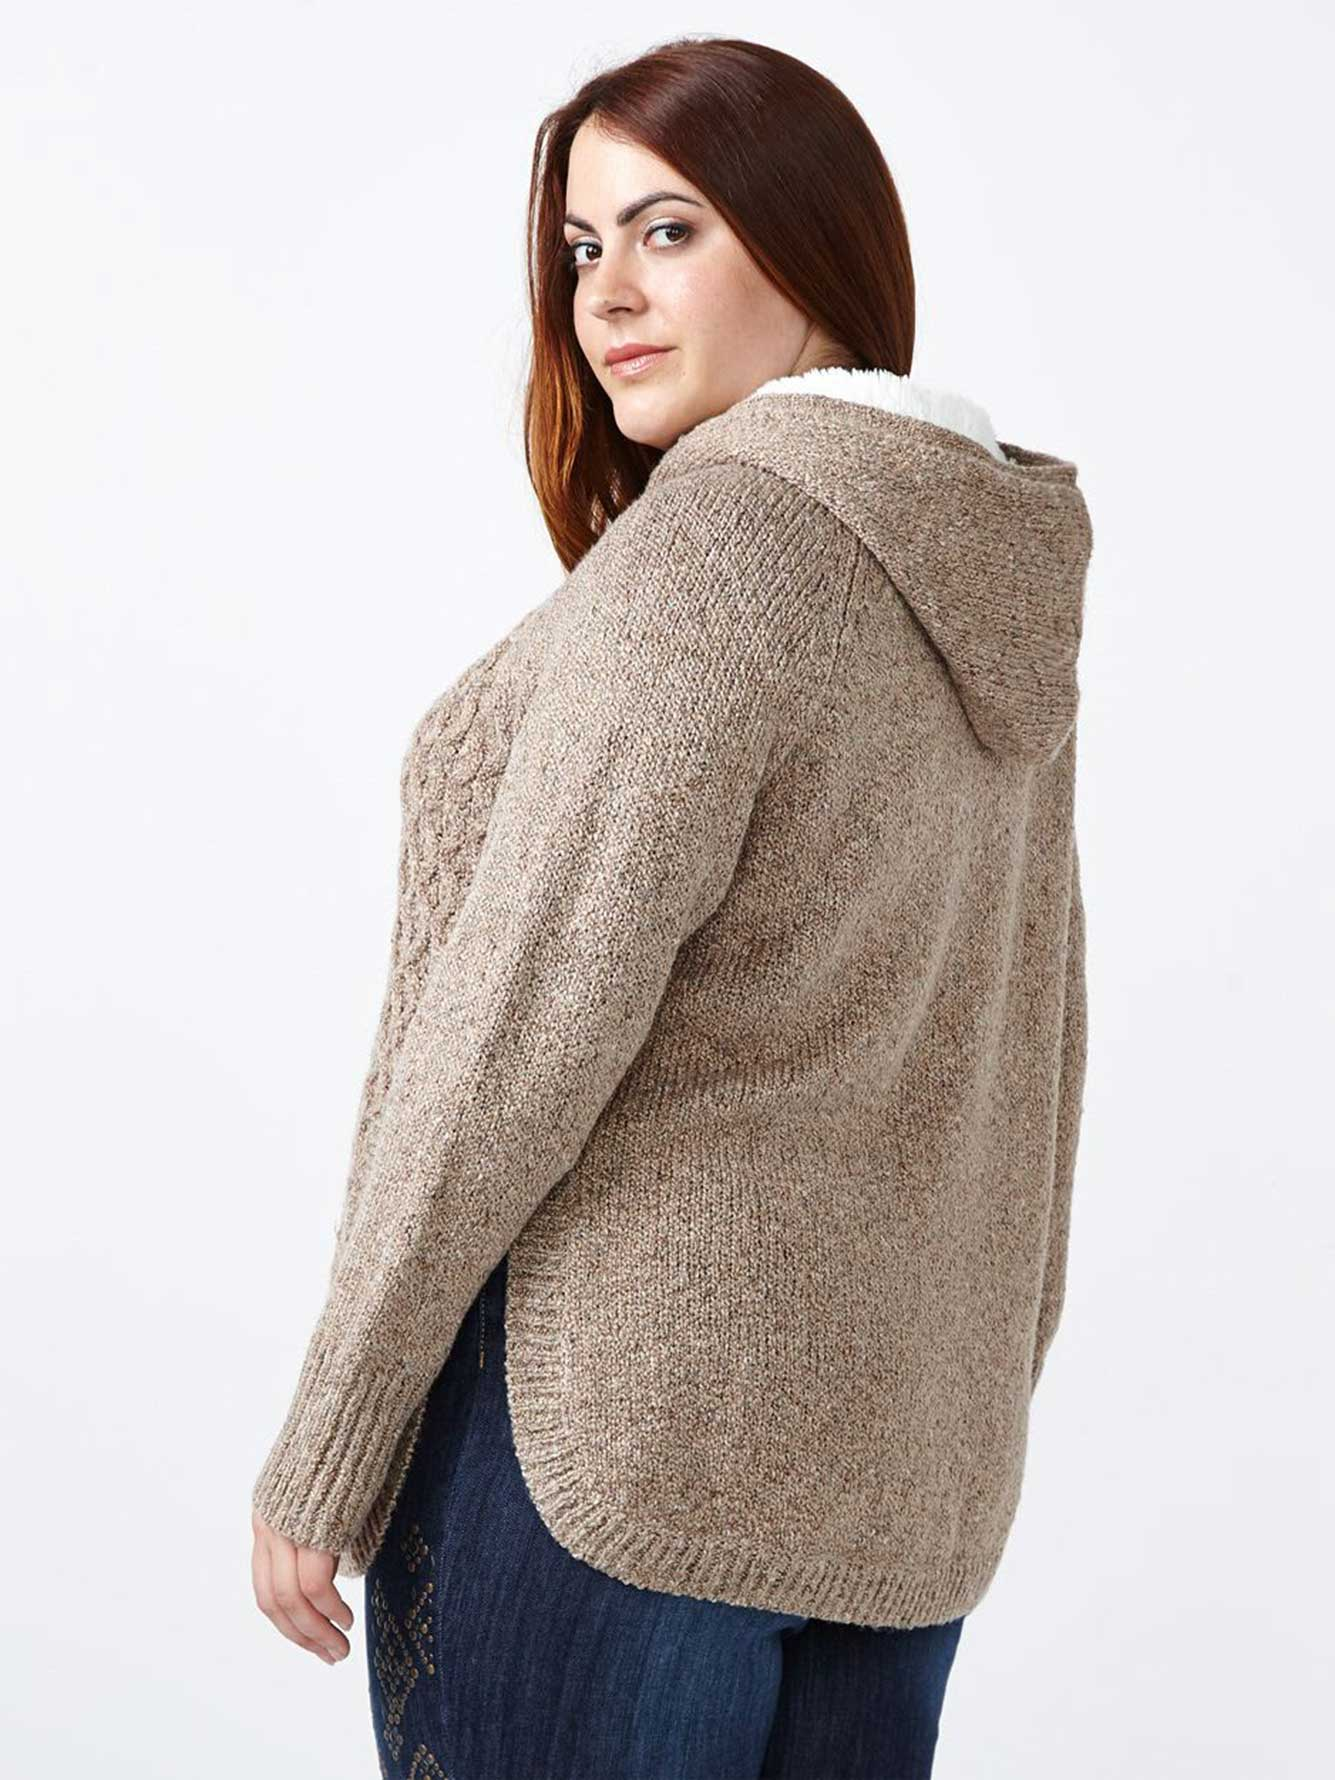 d/c JEANS Hooded Sweater with Sherpa Lining | Penningtons